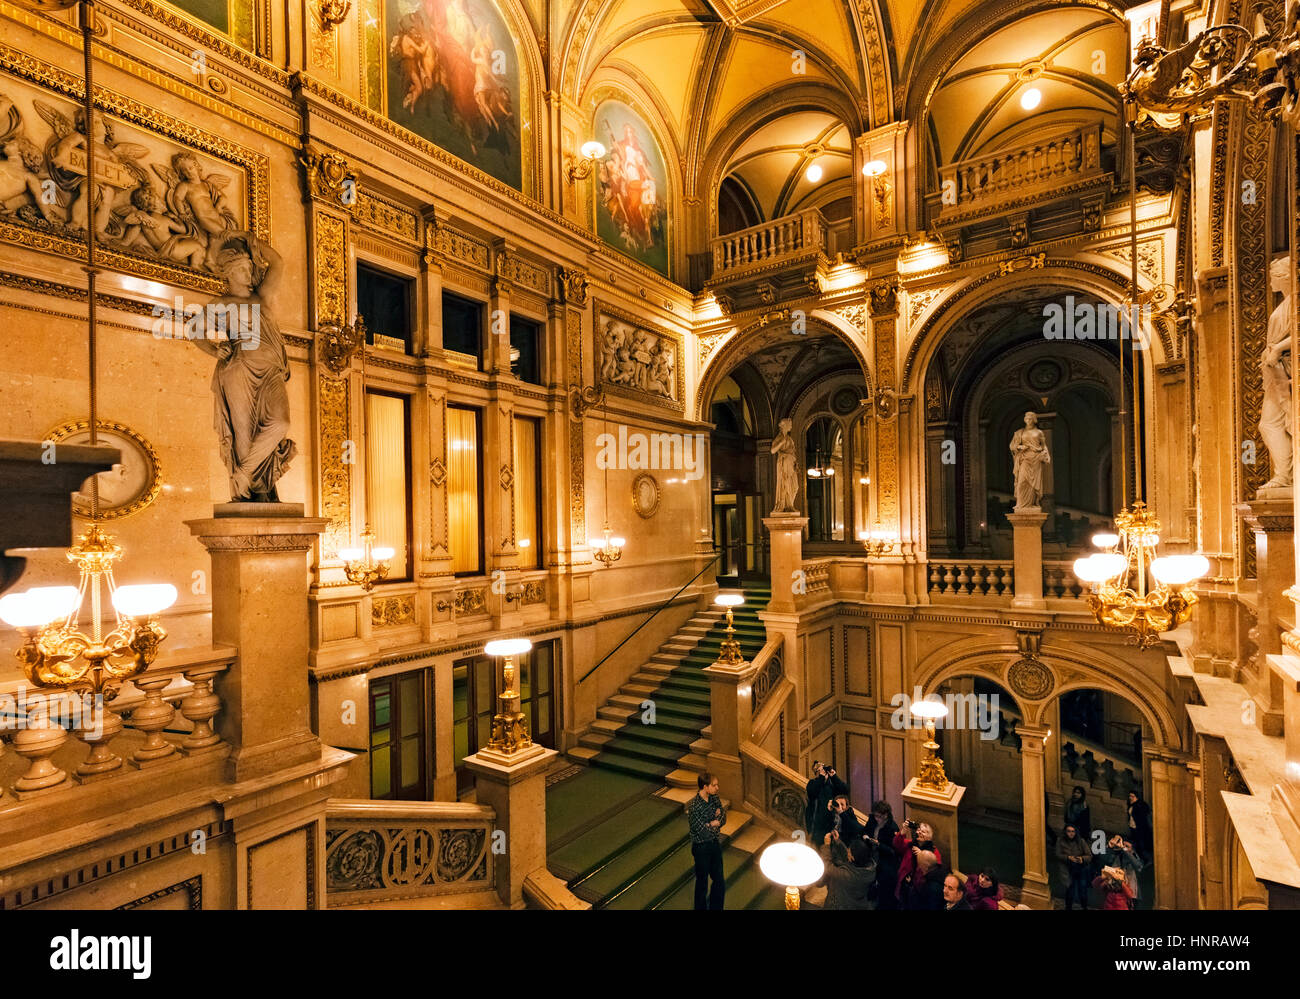 Stock Photo - Interior of Vienna Royal Opera house - Stock Image